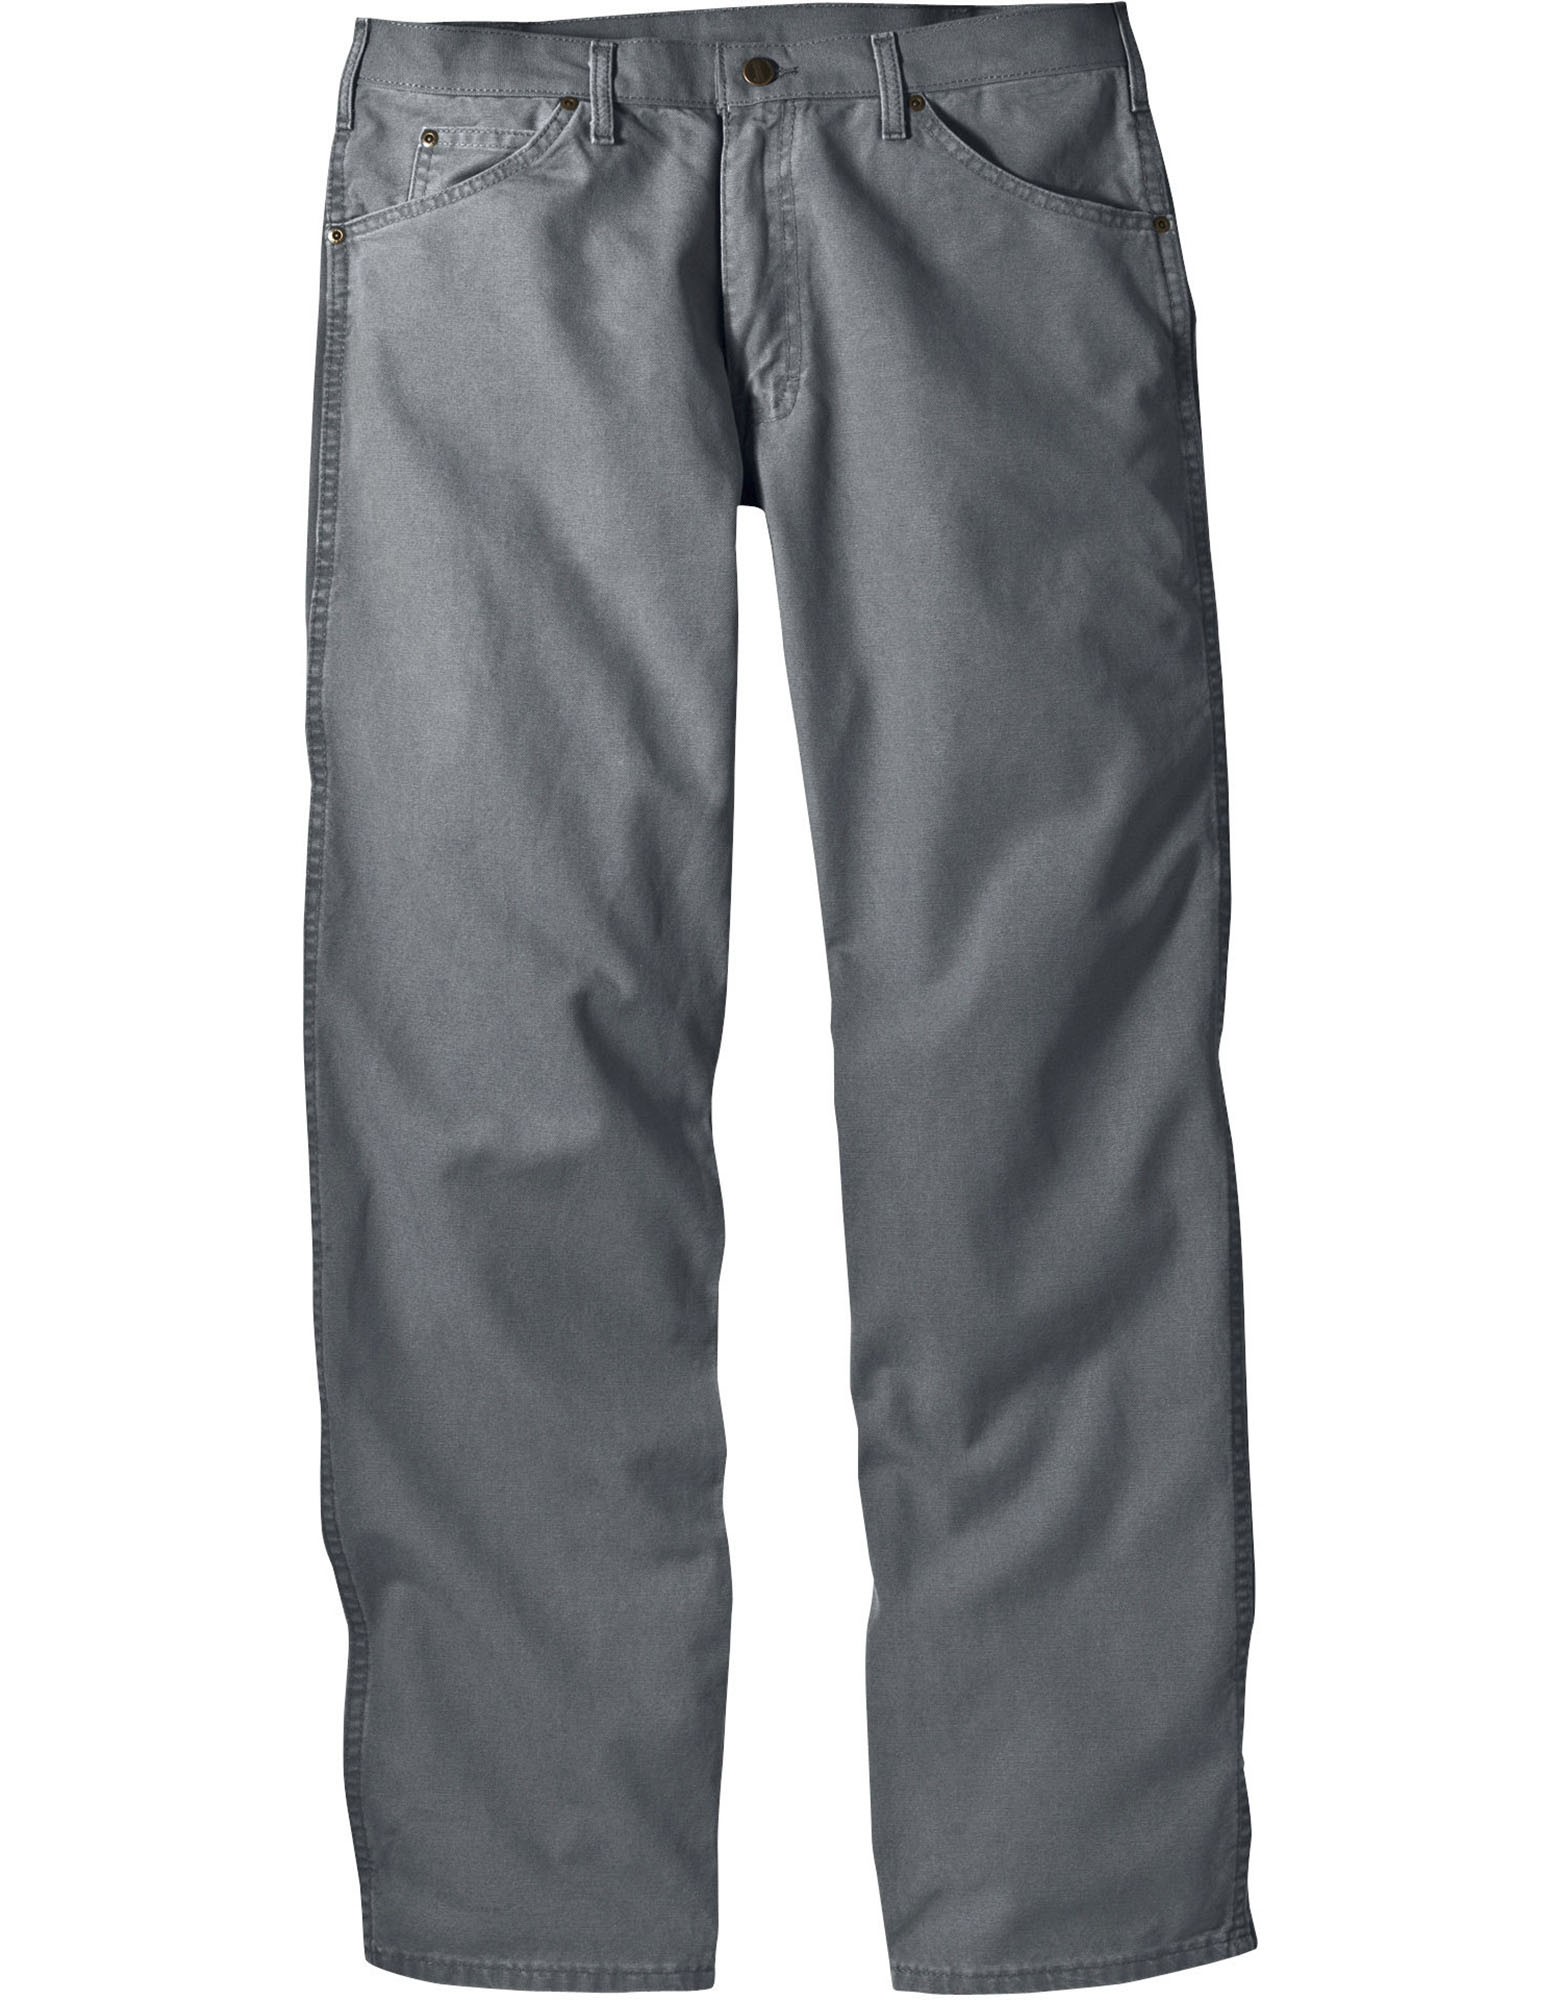 Genuine Dickies Dungaree Jeans - Stonewashed Gray (SSL)